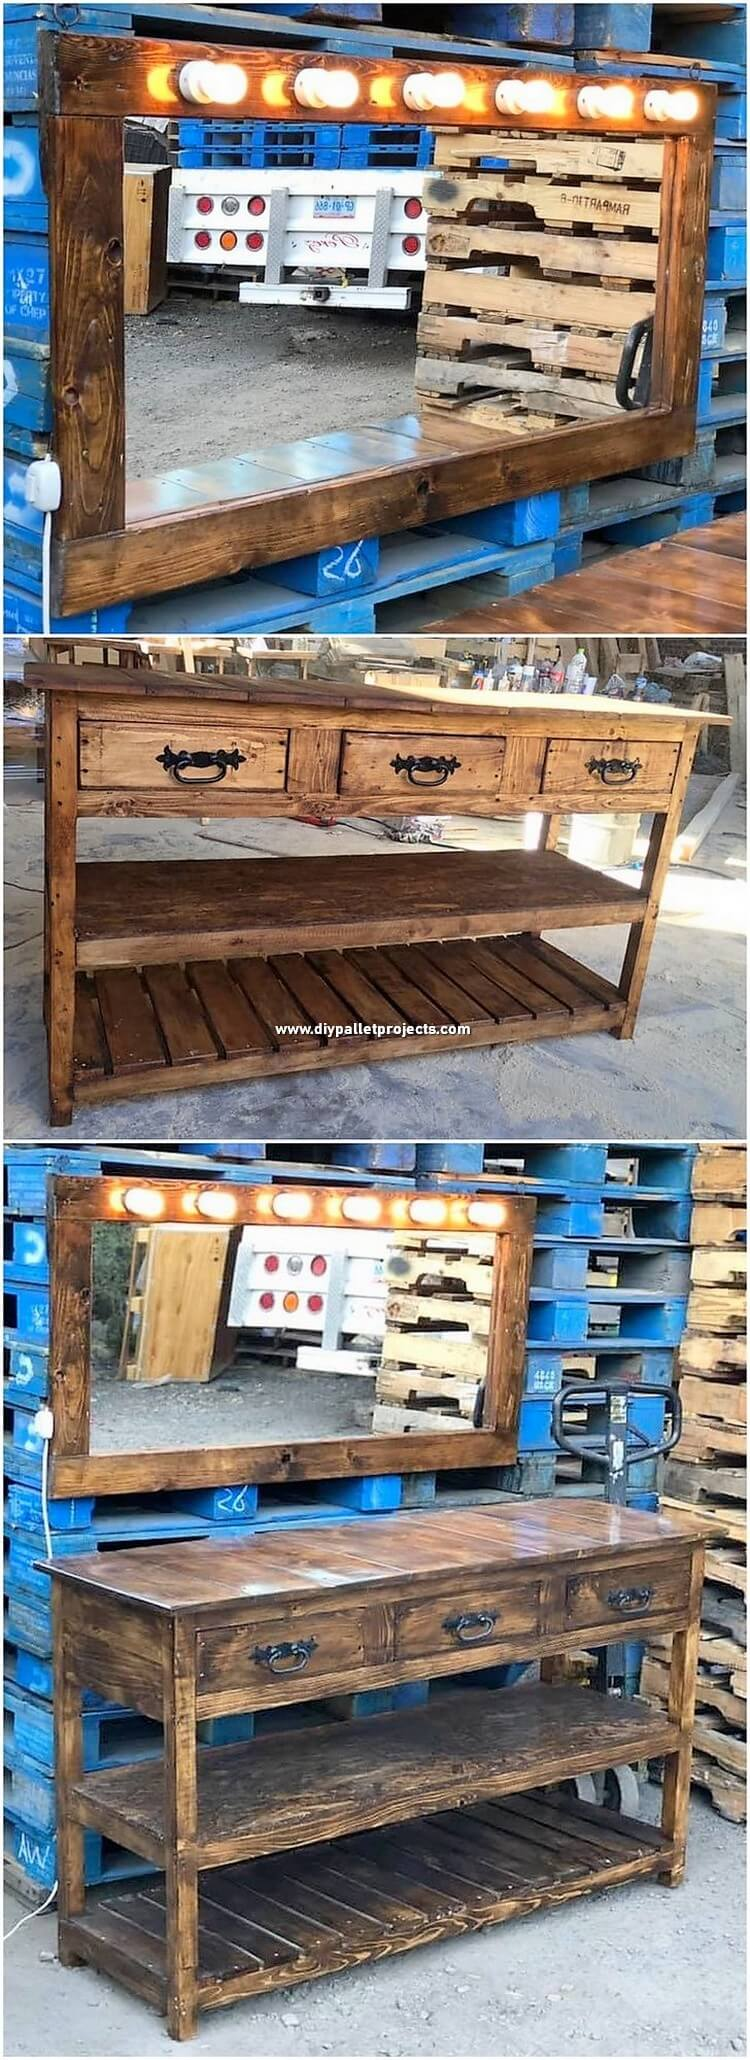 Pallet Mirror Frame and Table with Drawers